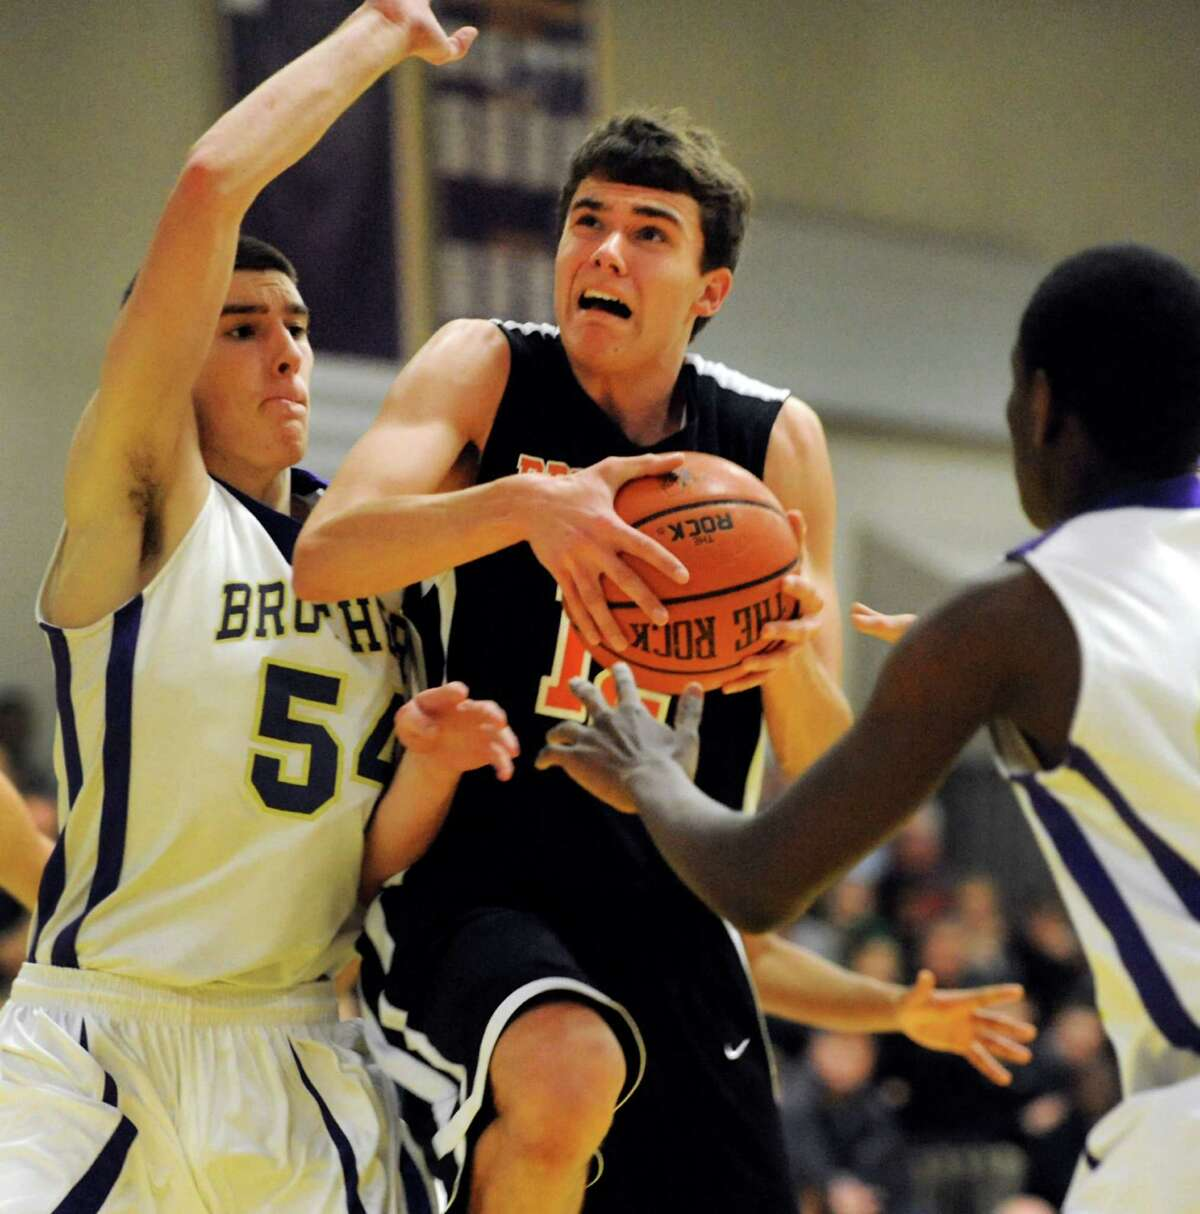 Bethlehem's John Sica (12), center, goes to the hoop as CBA's Greig Stire (54) defends during their basketball game on Friday, Dec. 28, 2012, at Christian Brothers Academy in Colonie, N.Y. (Cindy Schultz / Times Union)